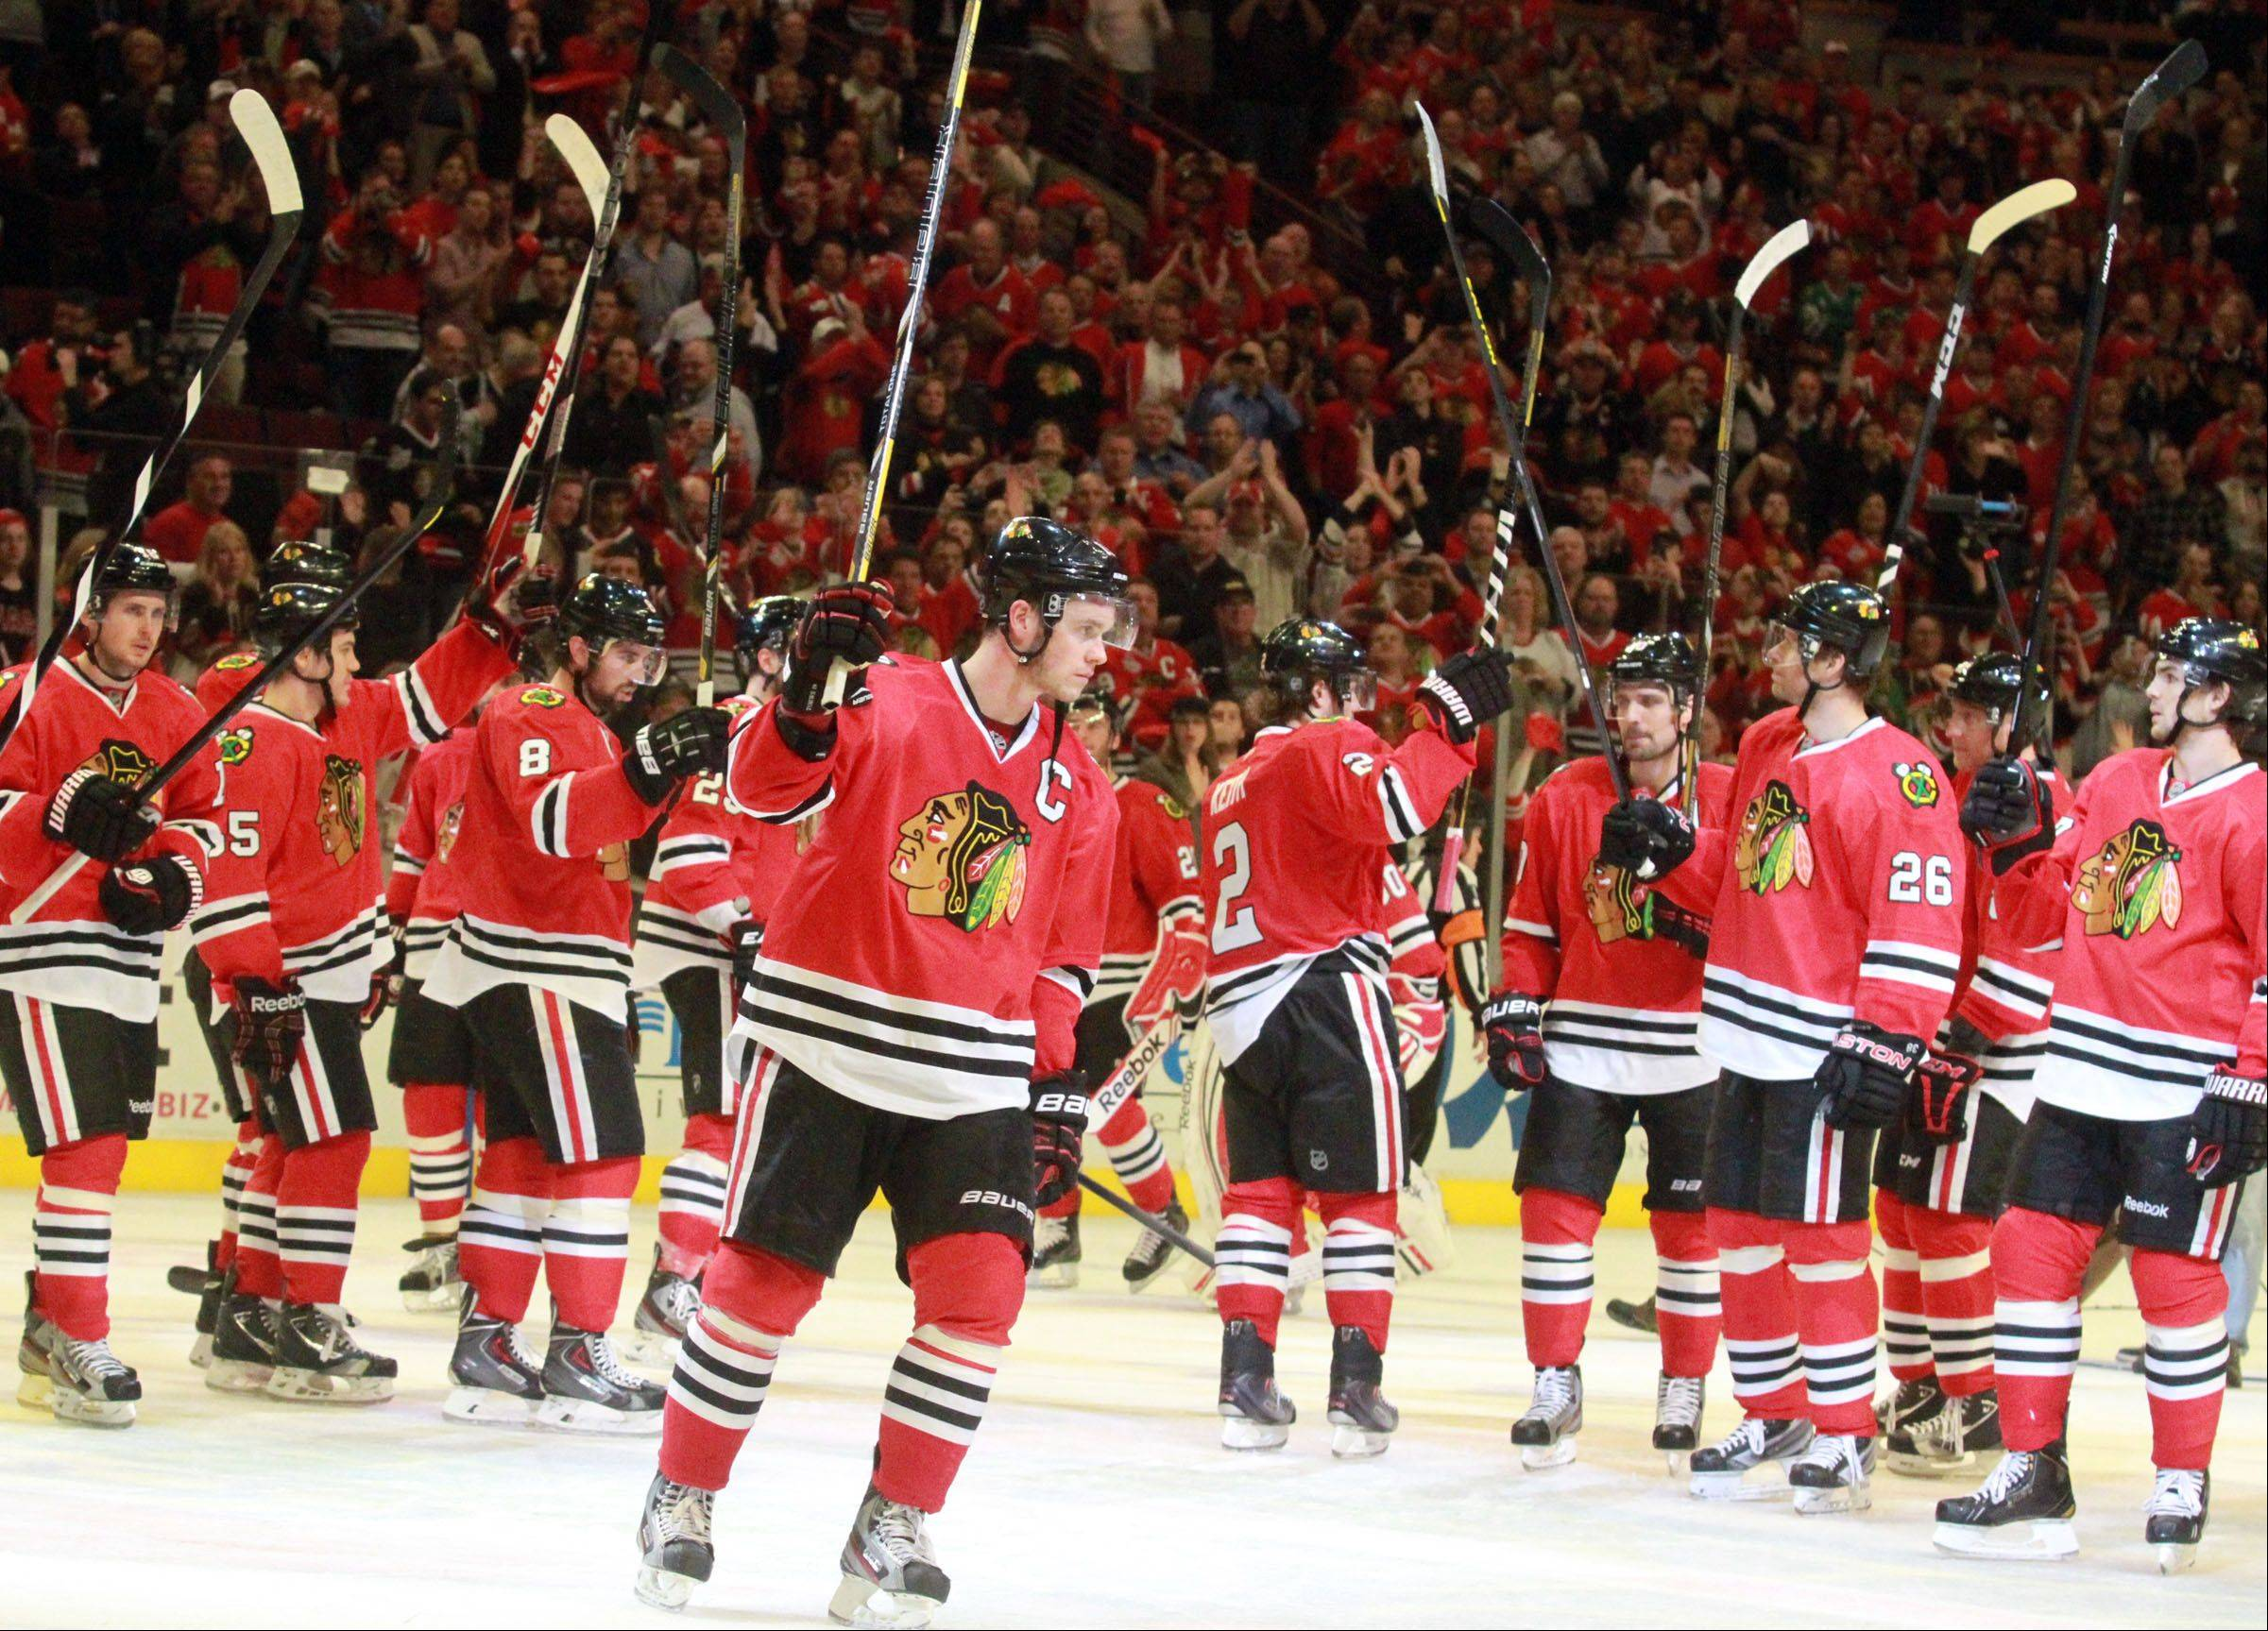 Blackhawks catch break facing Wings�but must be ready